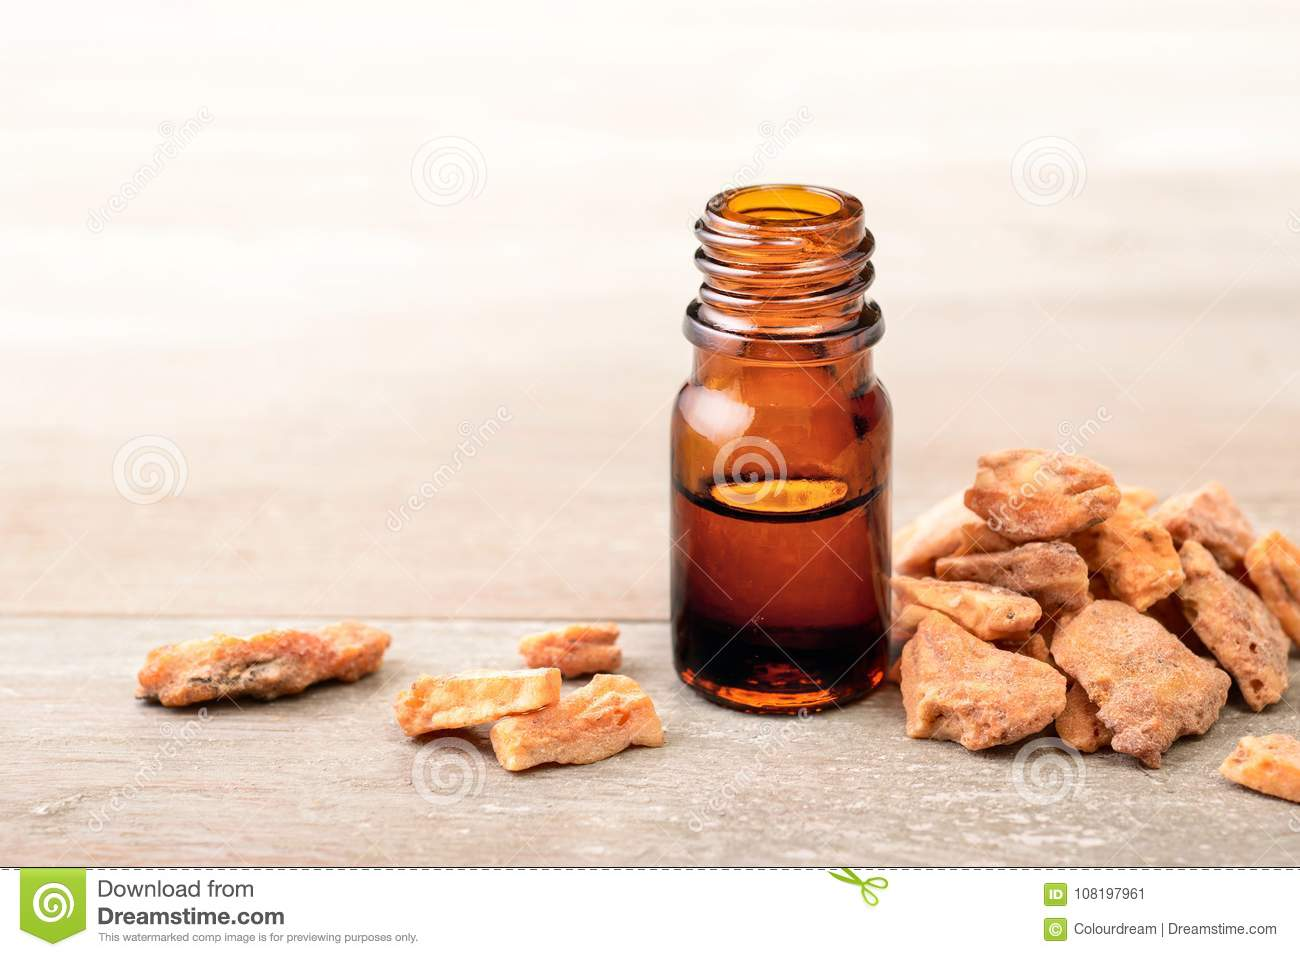 Styrax Benzoin Essential Oil In The Bottle Stock Image - Image of